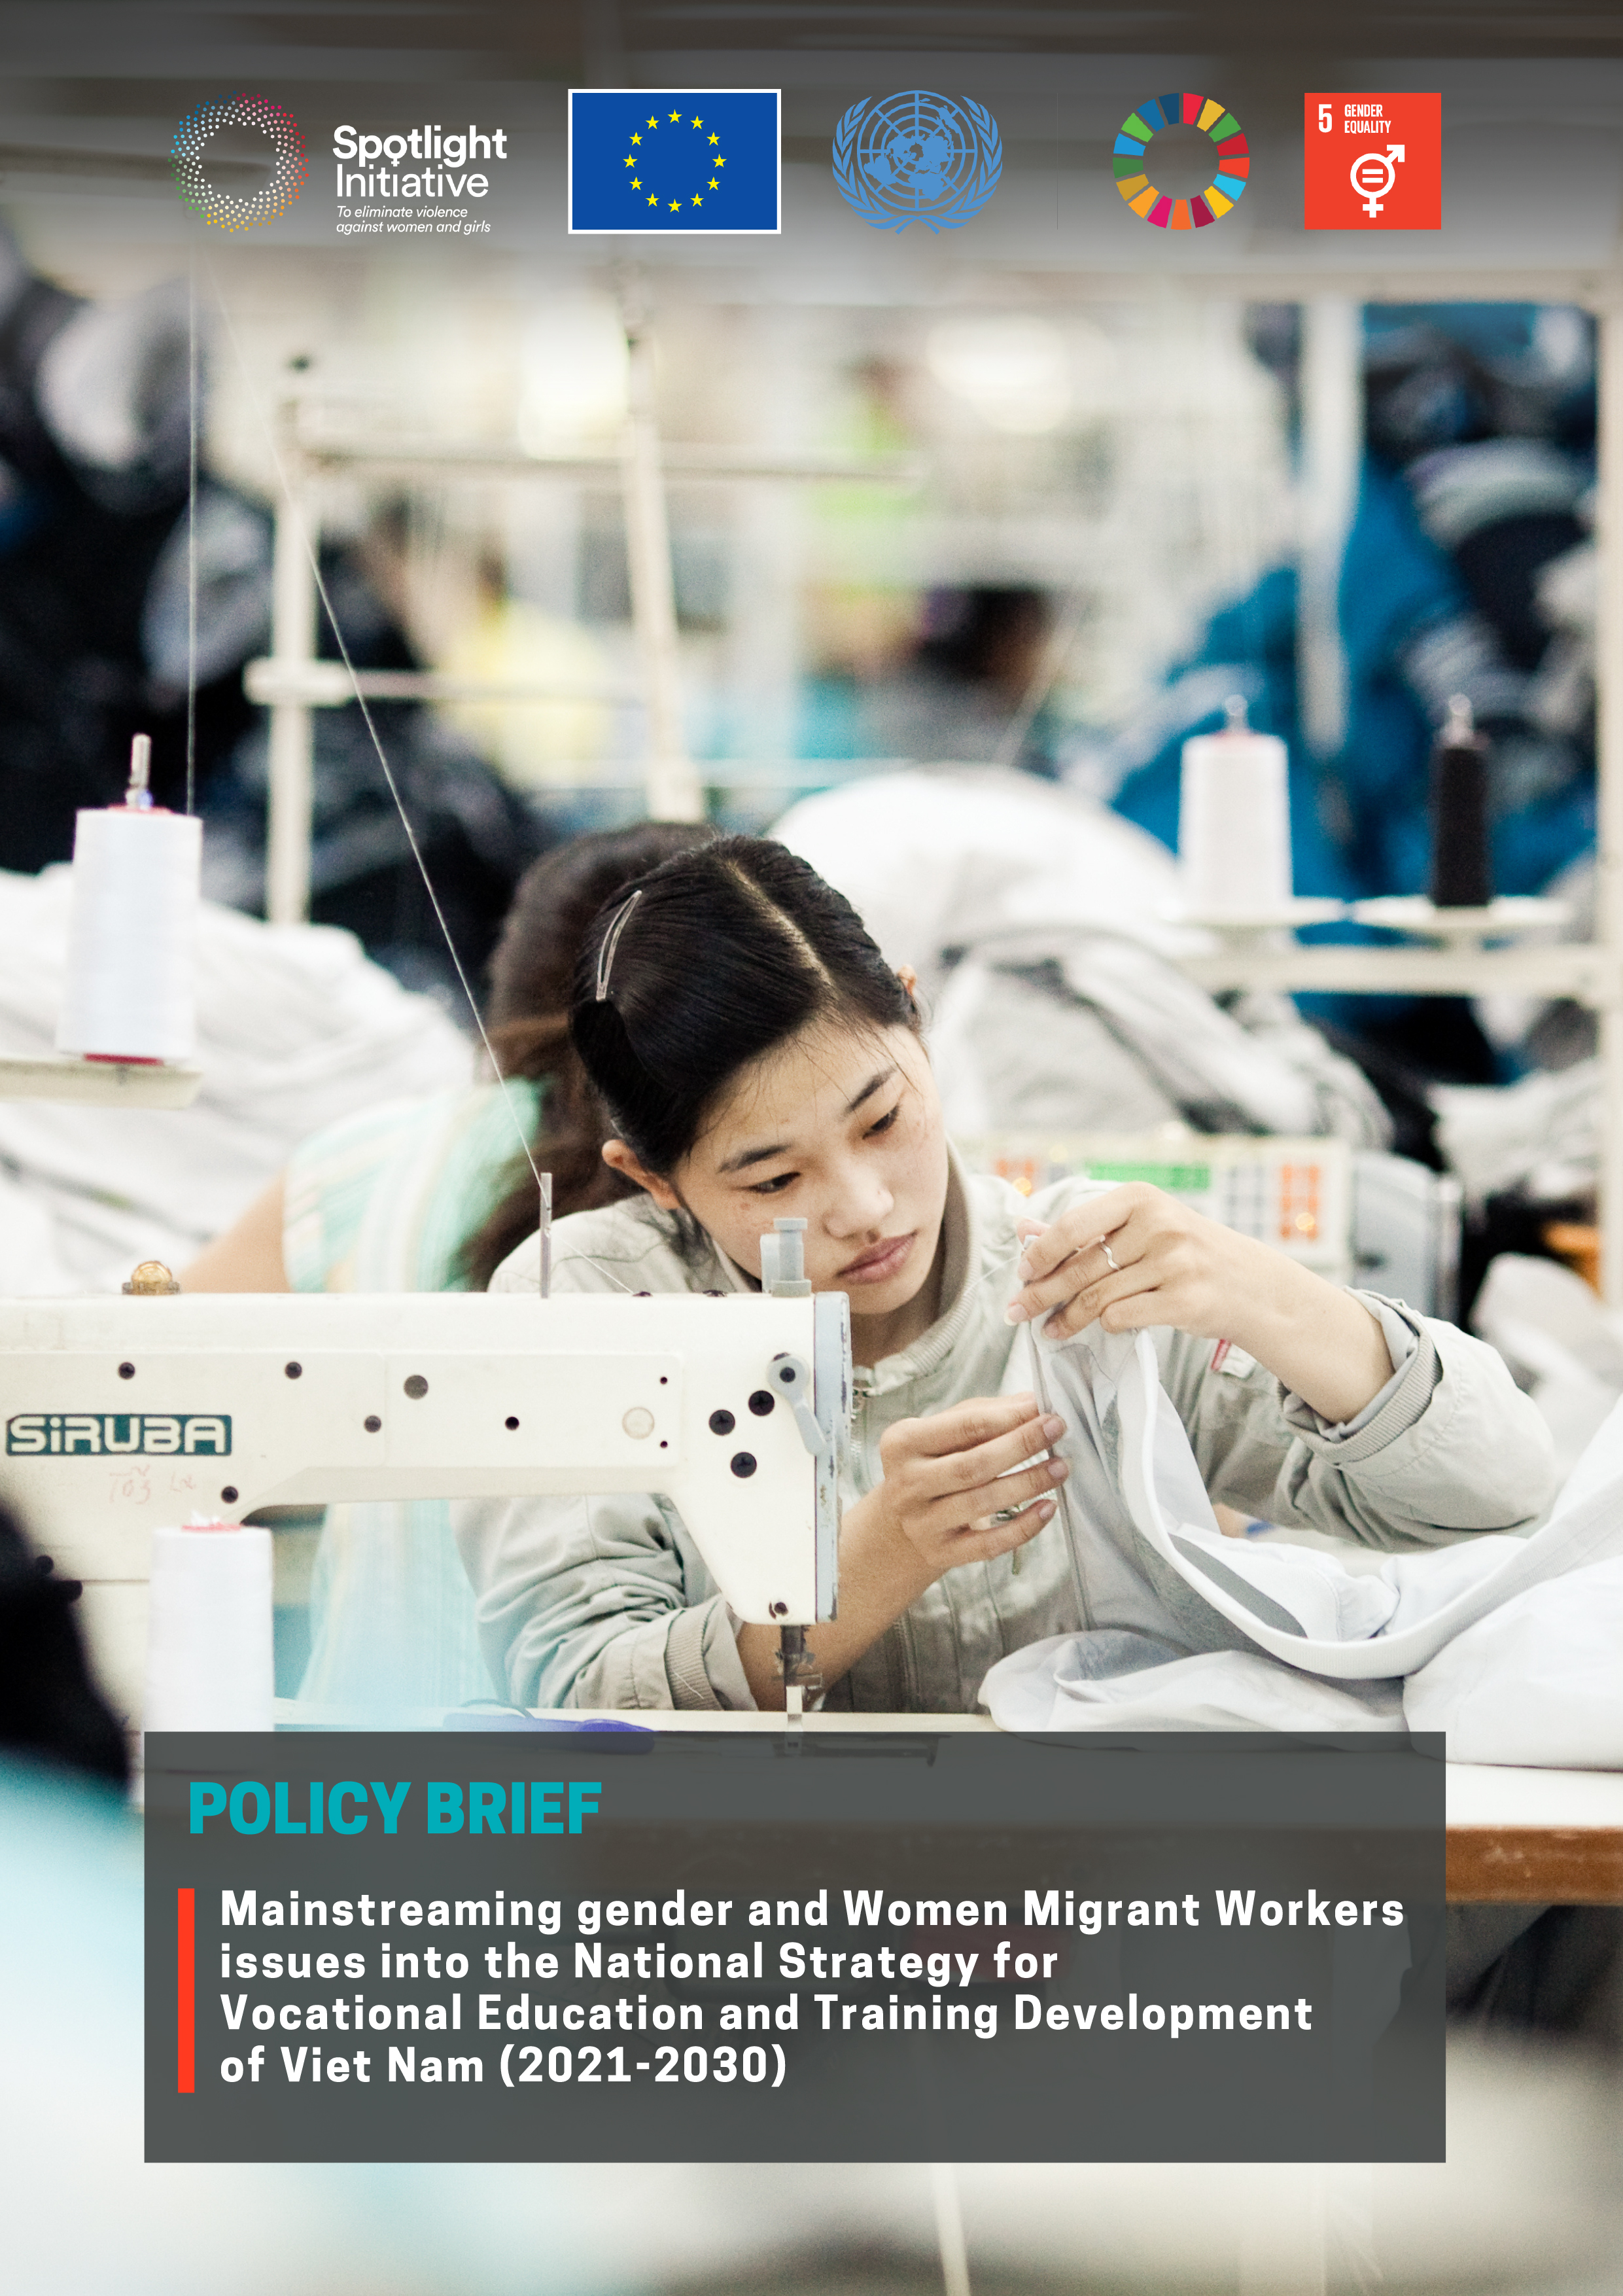 Policy brief: Mainstreaming gender/Women Migrant Workers issues into the National Strategy for Vocational Education and Training Development (2021-2030) of Viet Nam